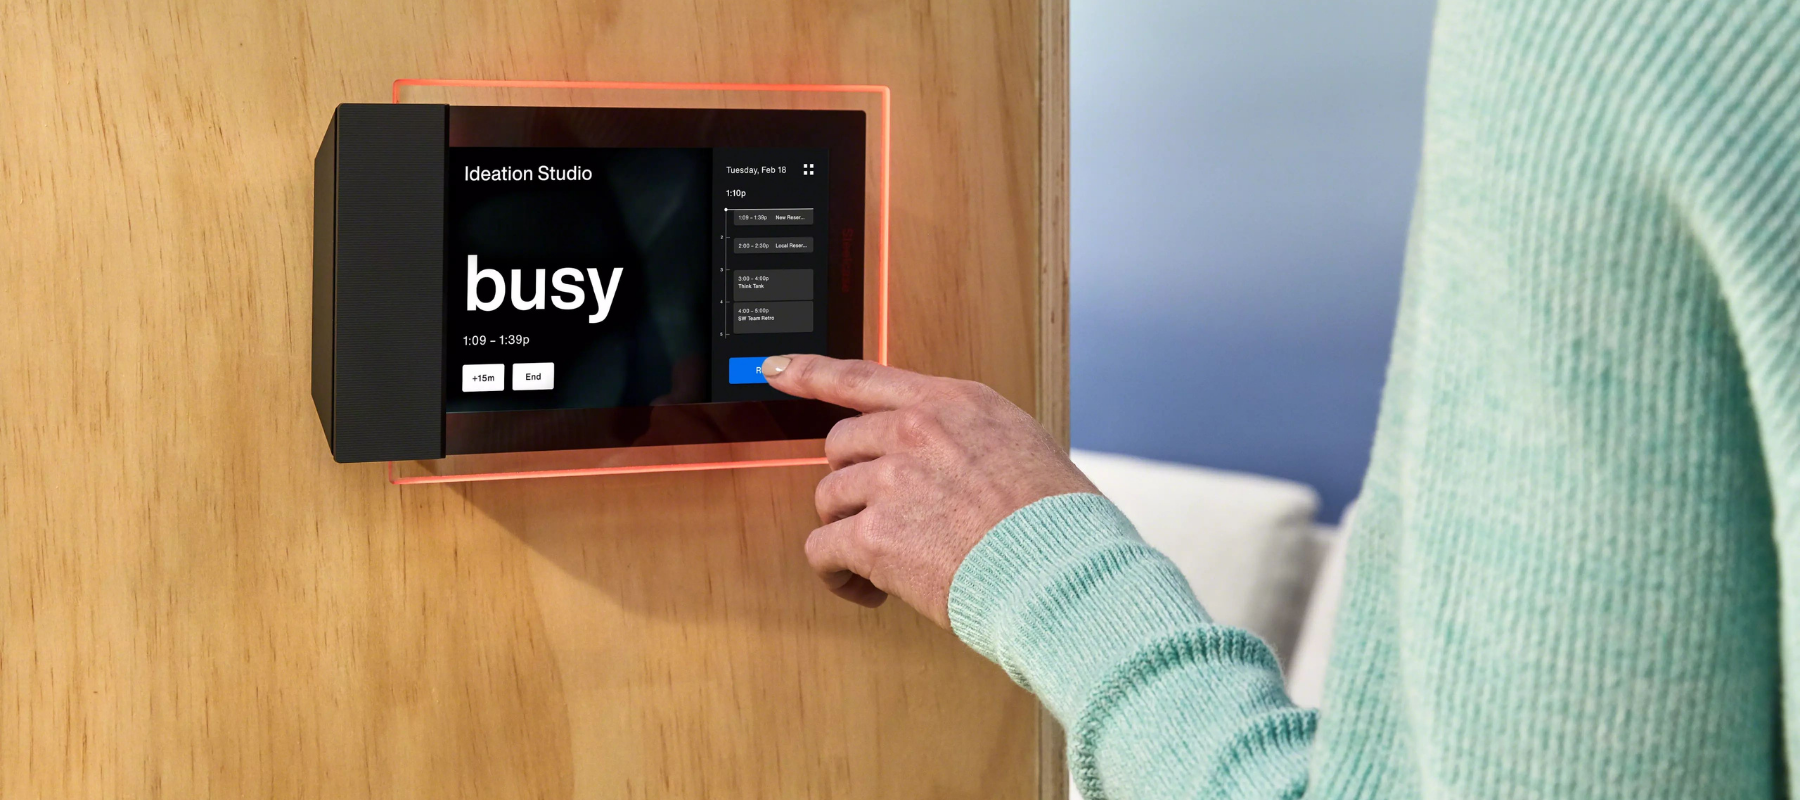 room booking interface that shows whether a room is booked